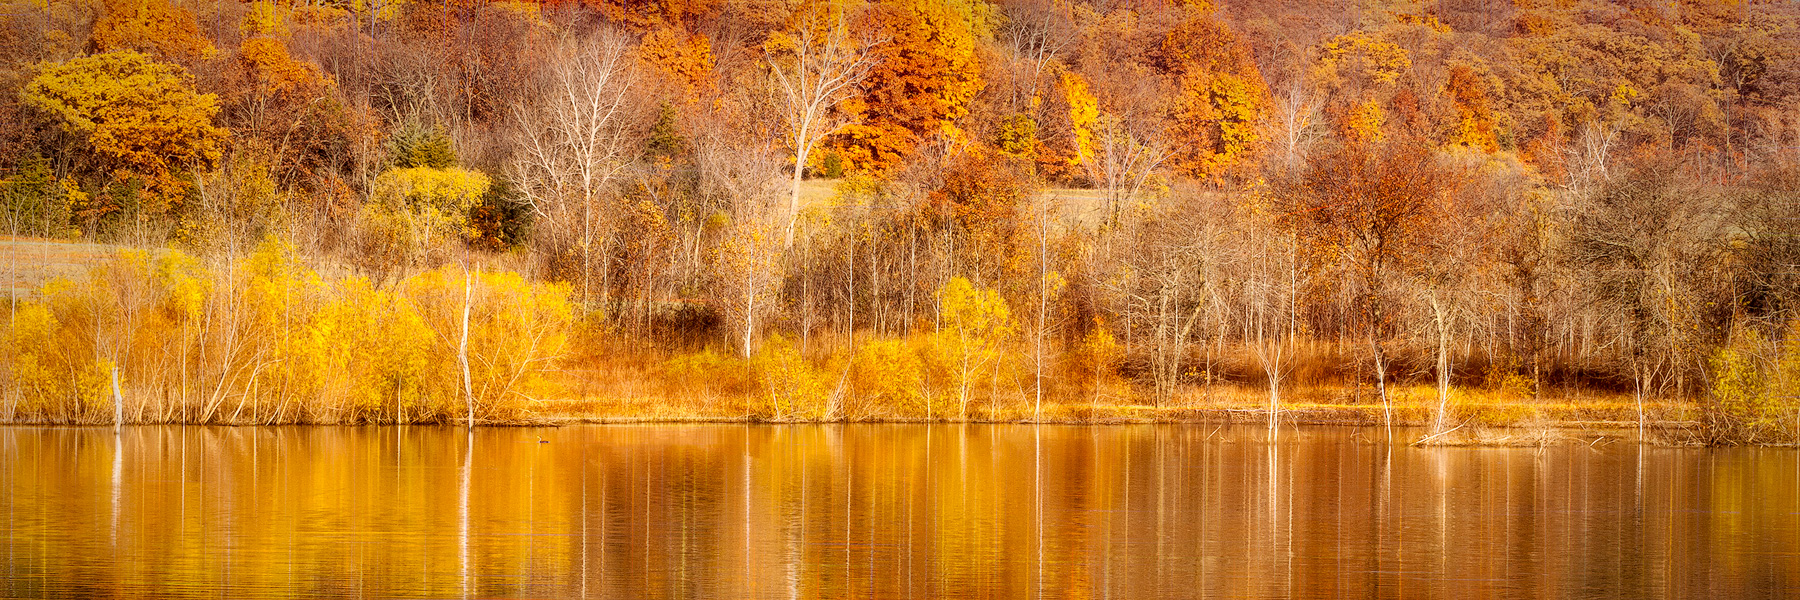 Natures Reflections - TRFA_6094